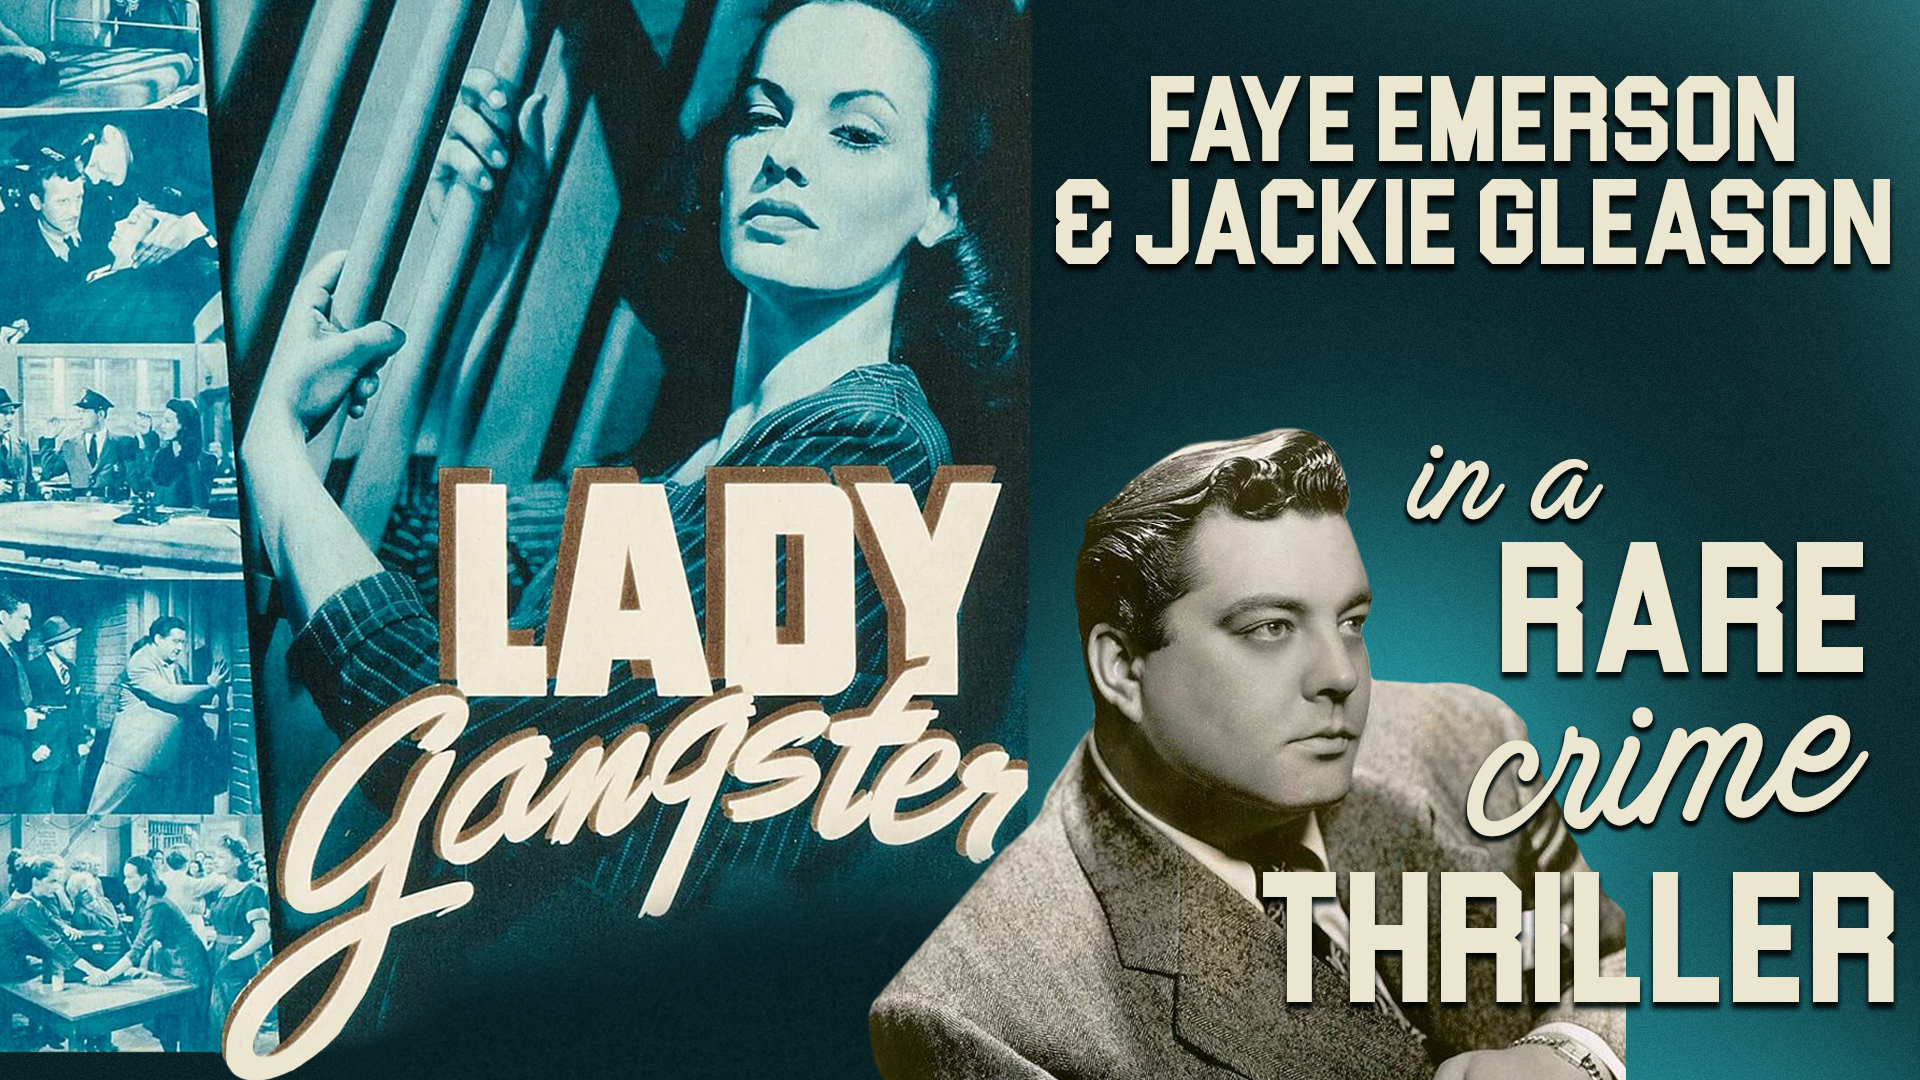 Lady Gangster - Faye Emerson & Jackie Gleason In A Rare Crime Thriller